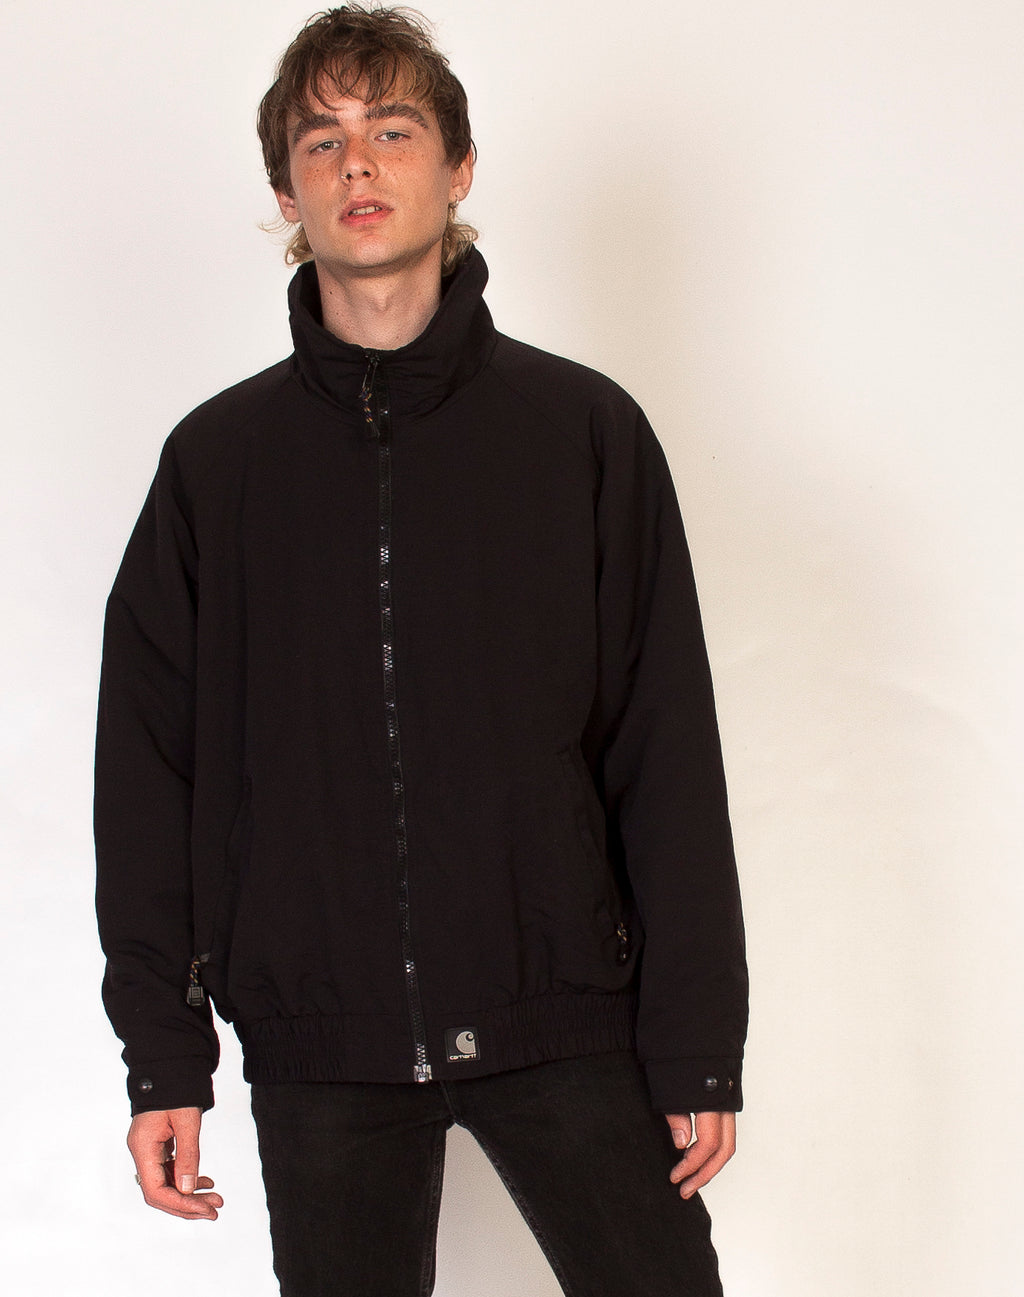 CARHARTT BLACK TRACK JACKET